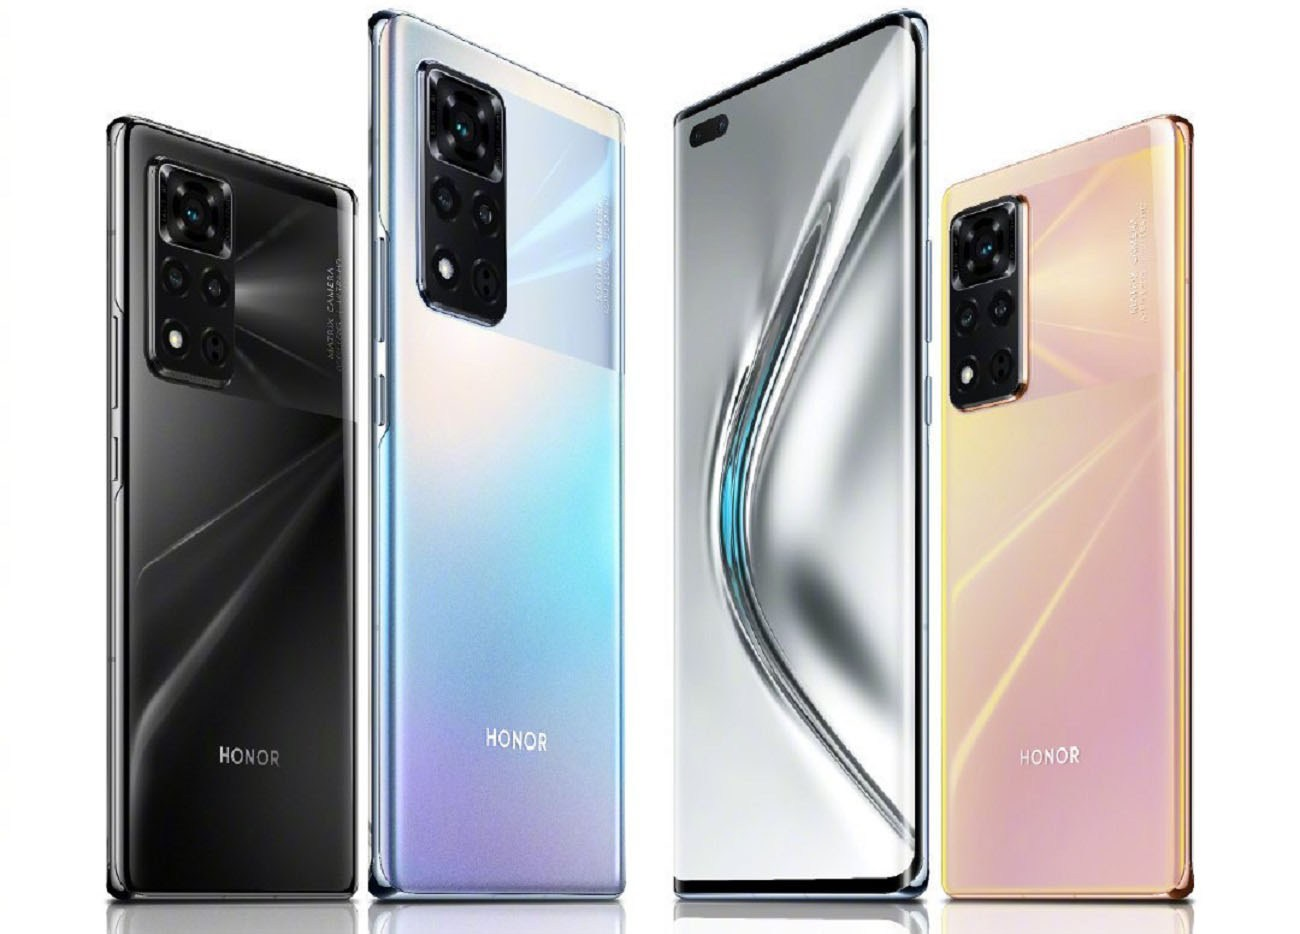 Honor officialise le View40 en Chine : 5G, écran 120 Hz, charge rapide et prix abordable